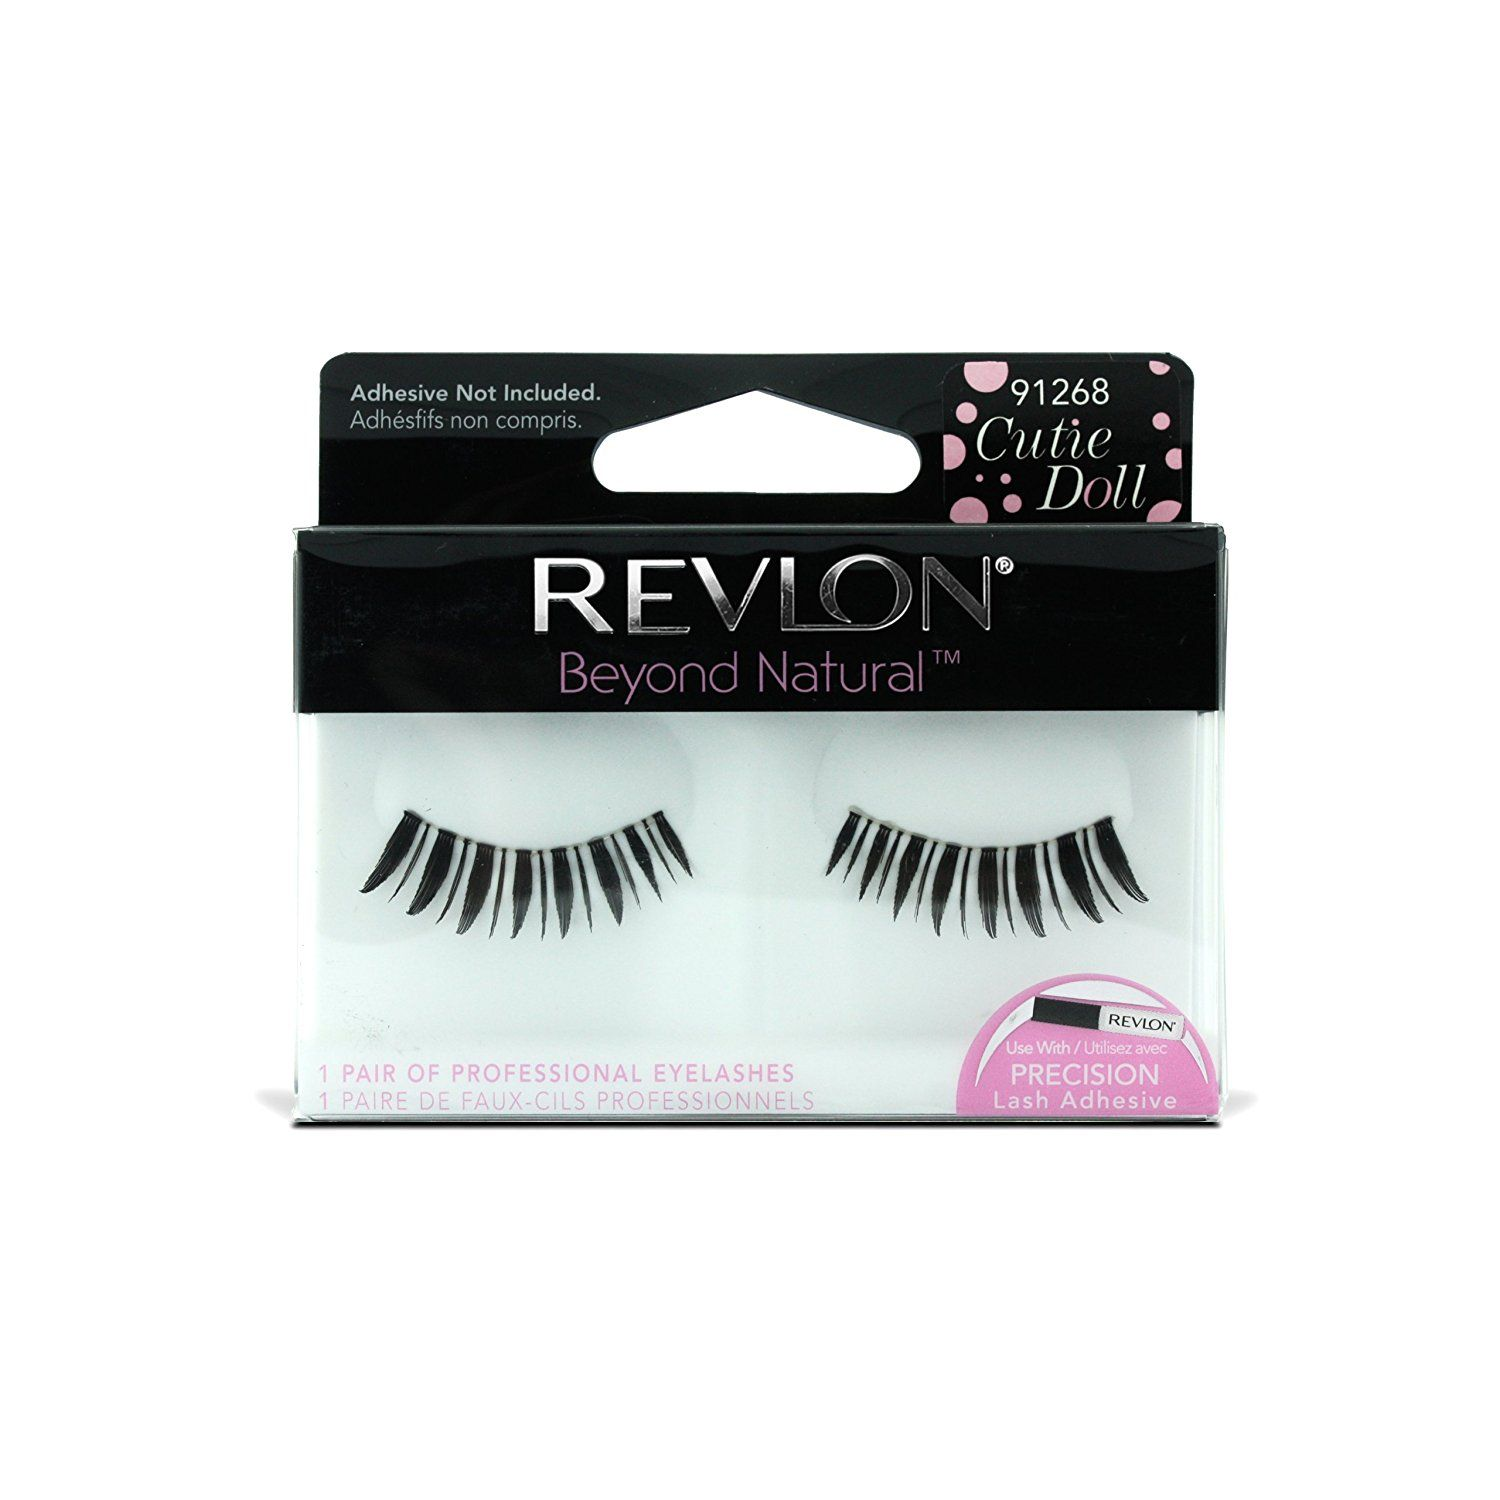 Revlon Beyond Natural Lashes Cutie Doll Read More At The Image